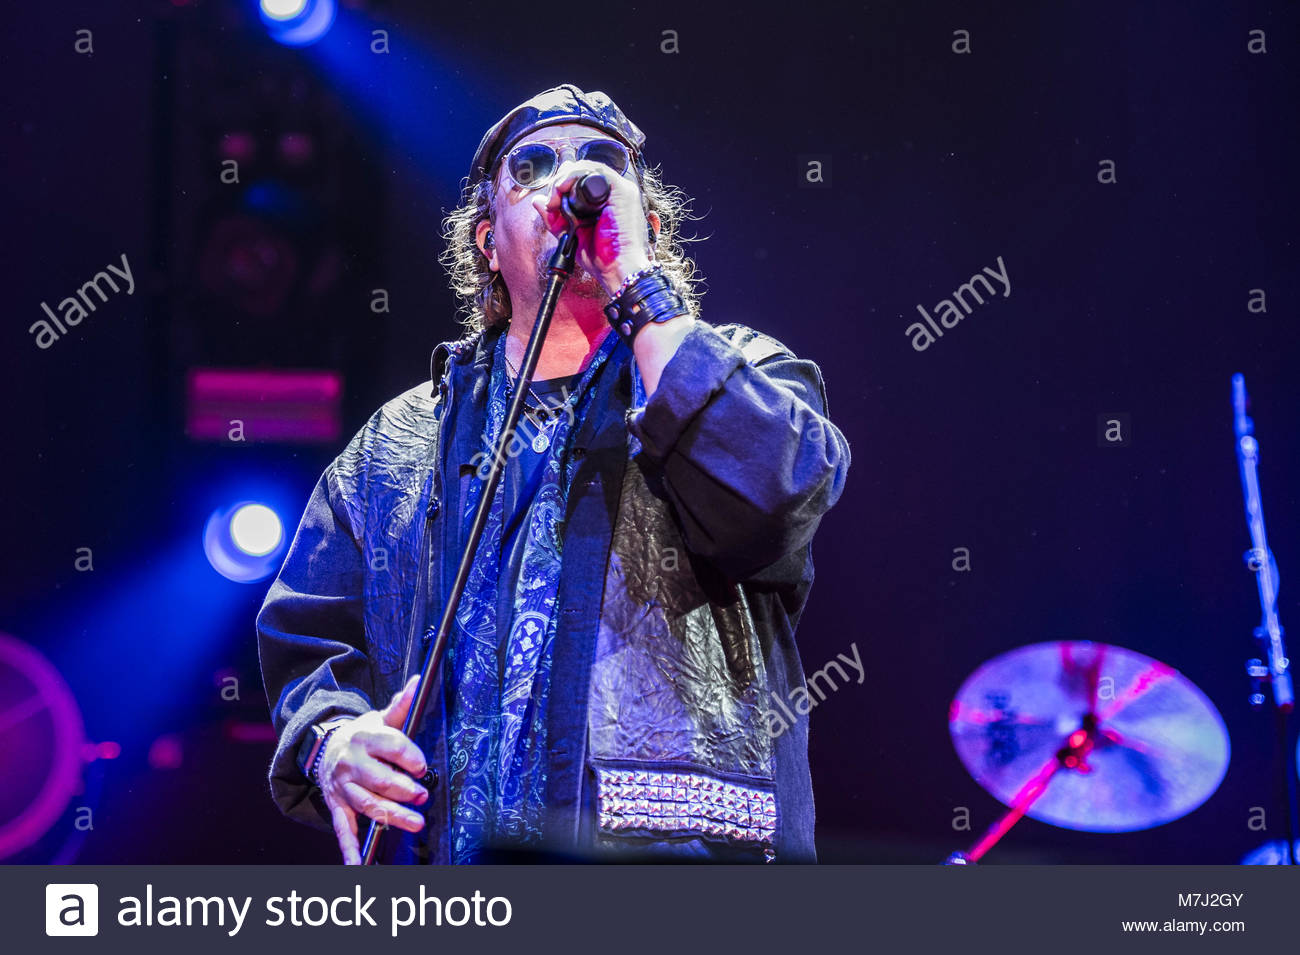 Toto Stock Photos & Toto Stock Images - Page 3 - Alamy